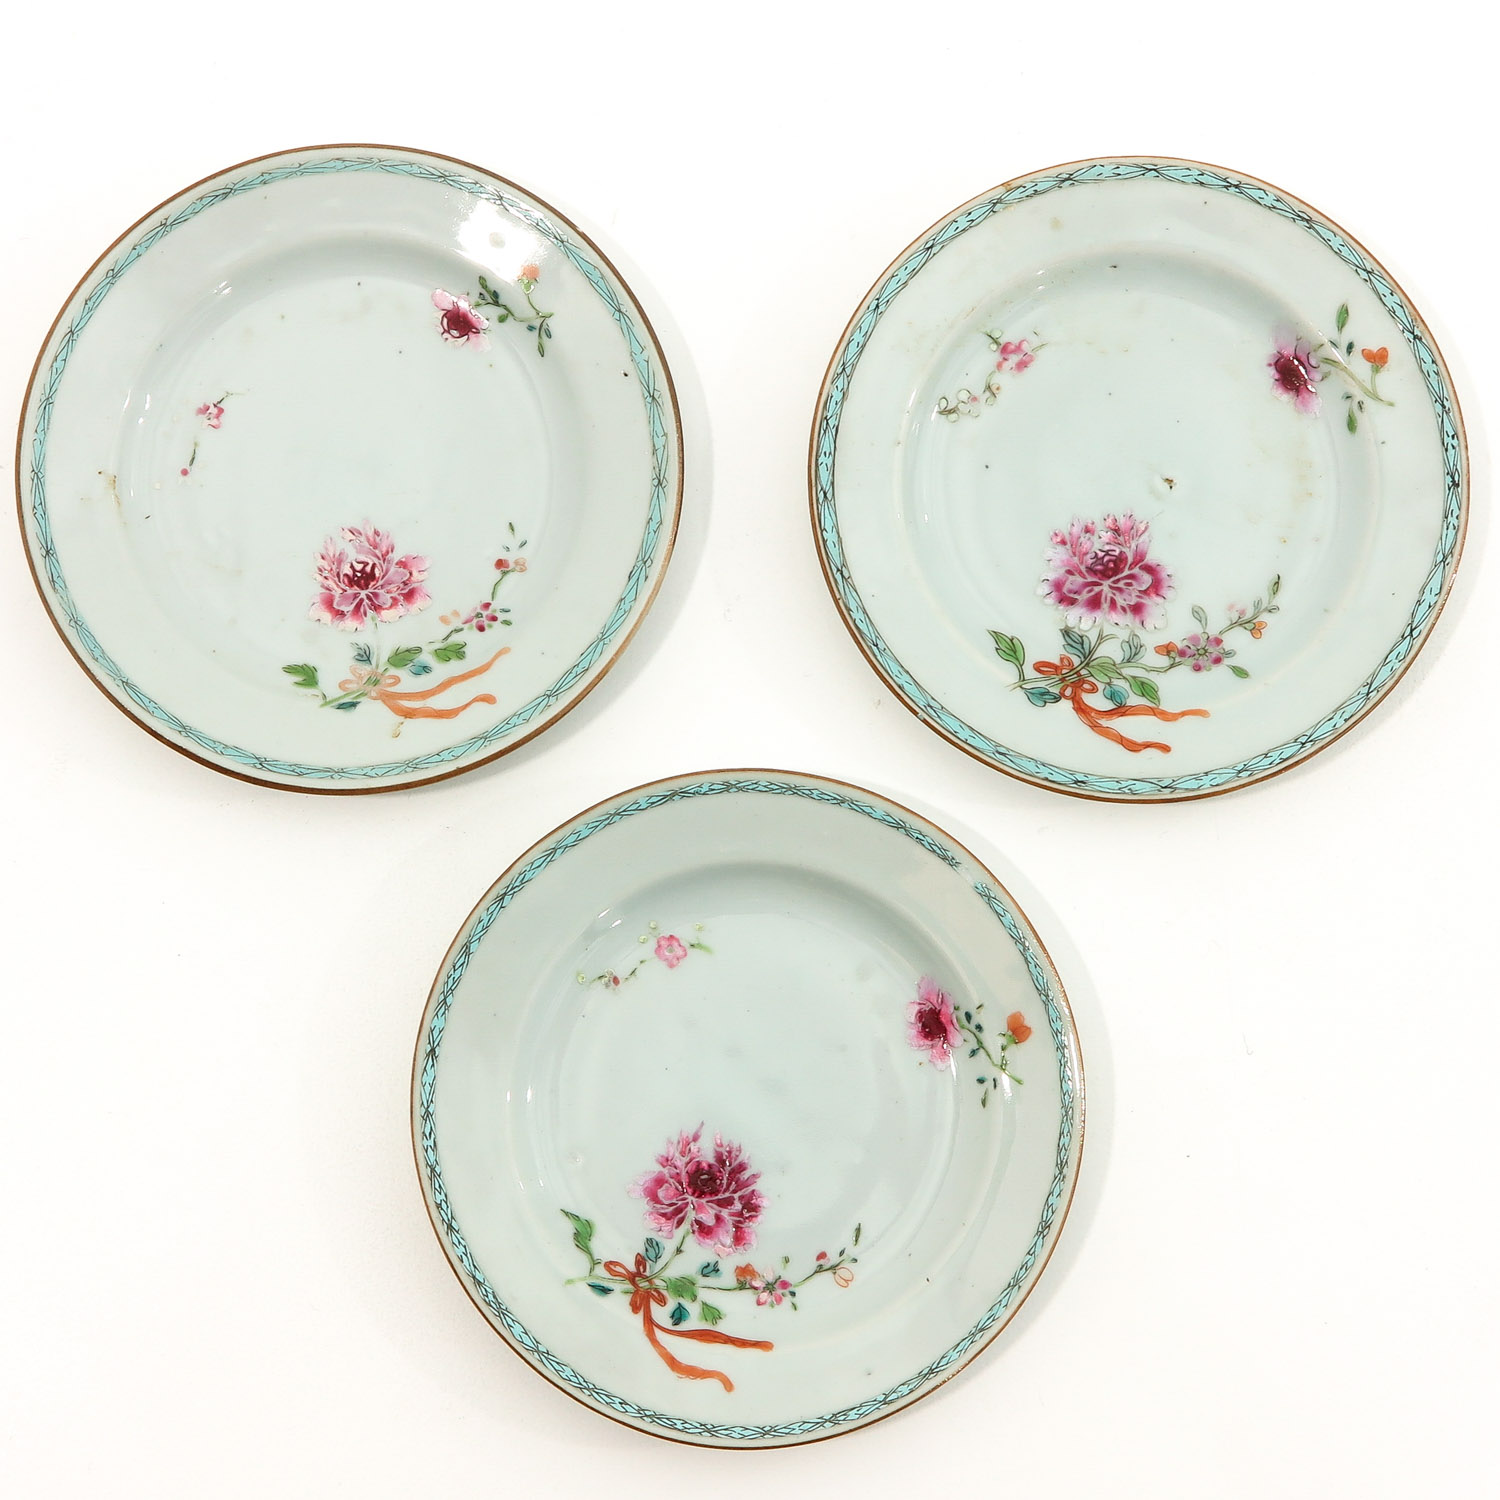 A Series of 5 Famille Rose Plates - Image 3 of 9